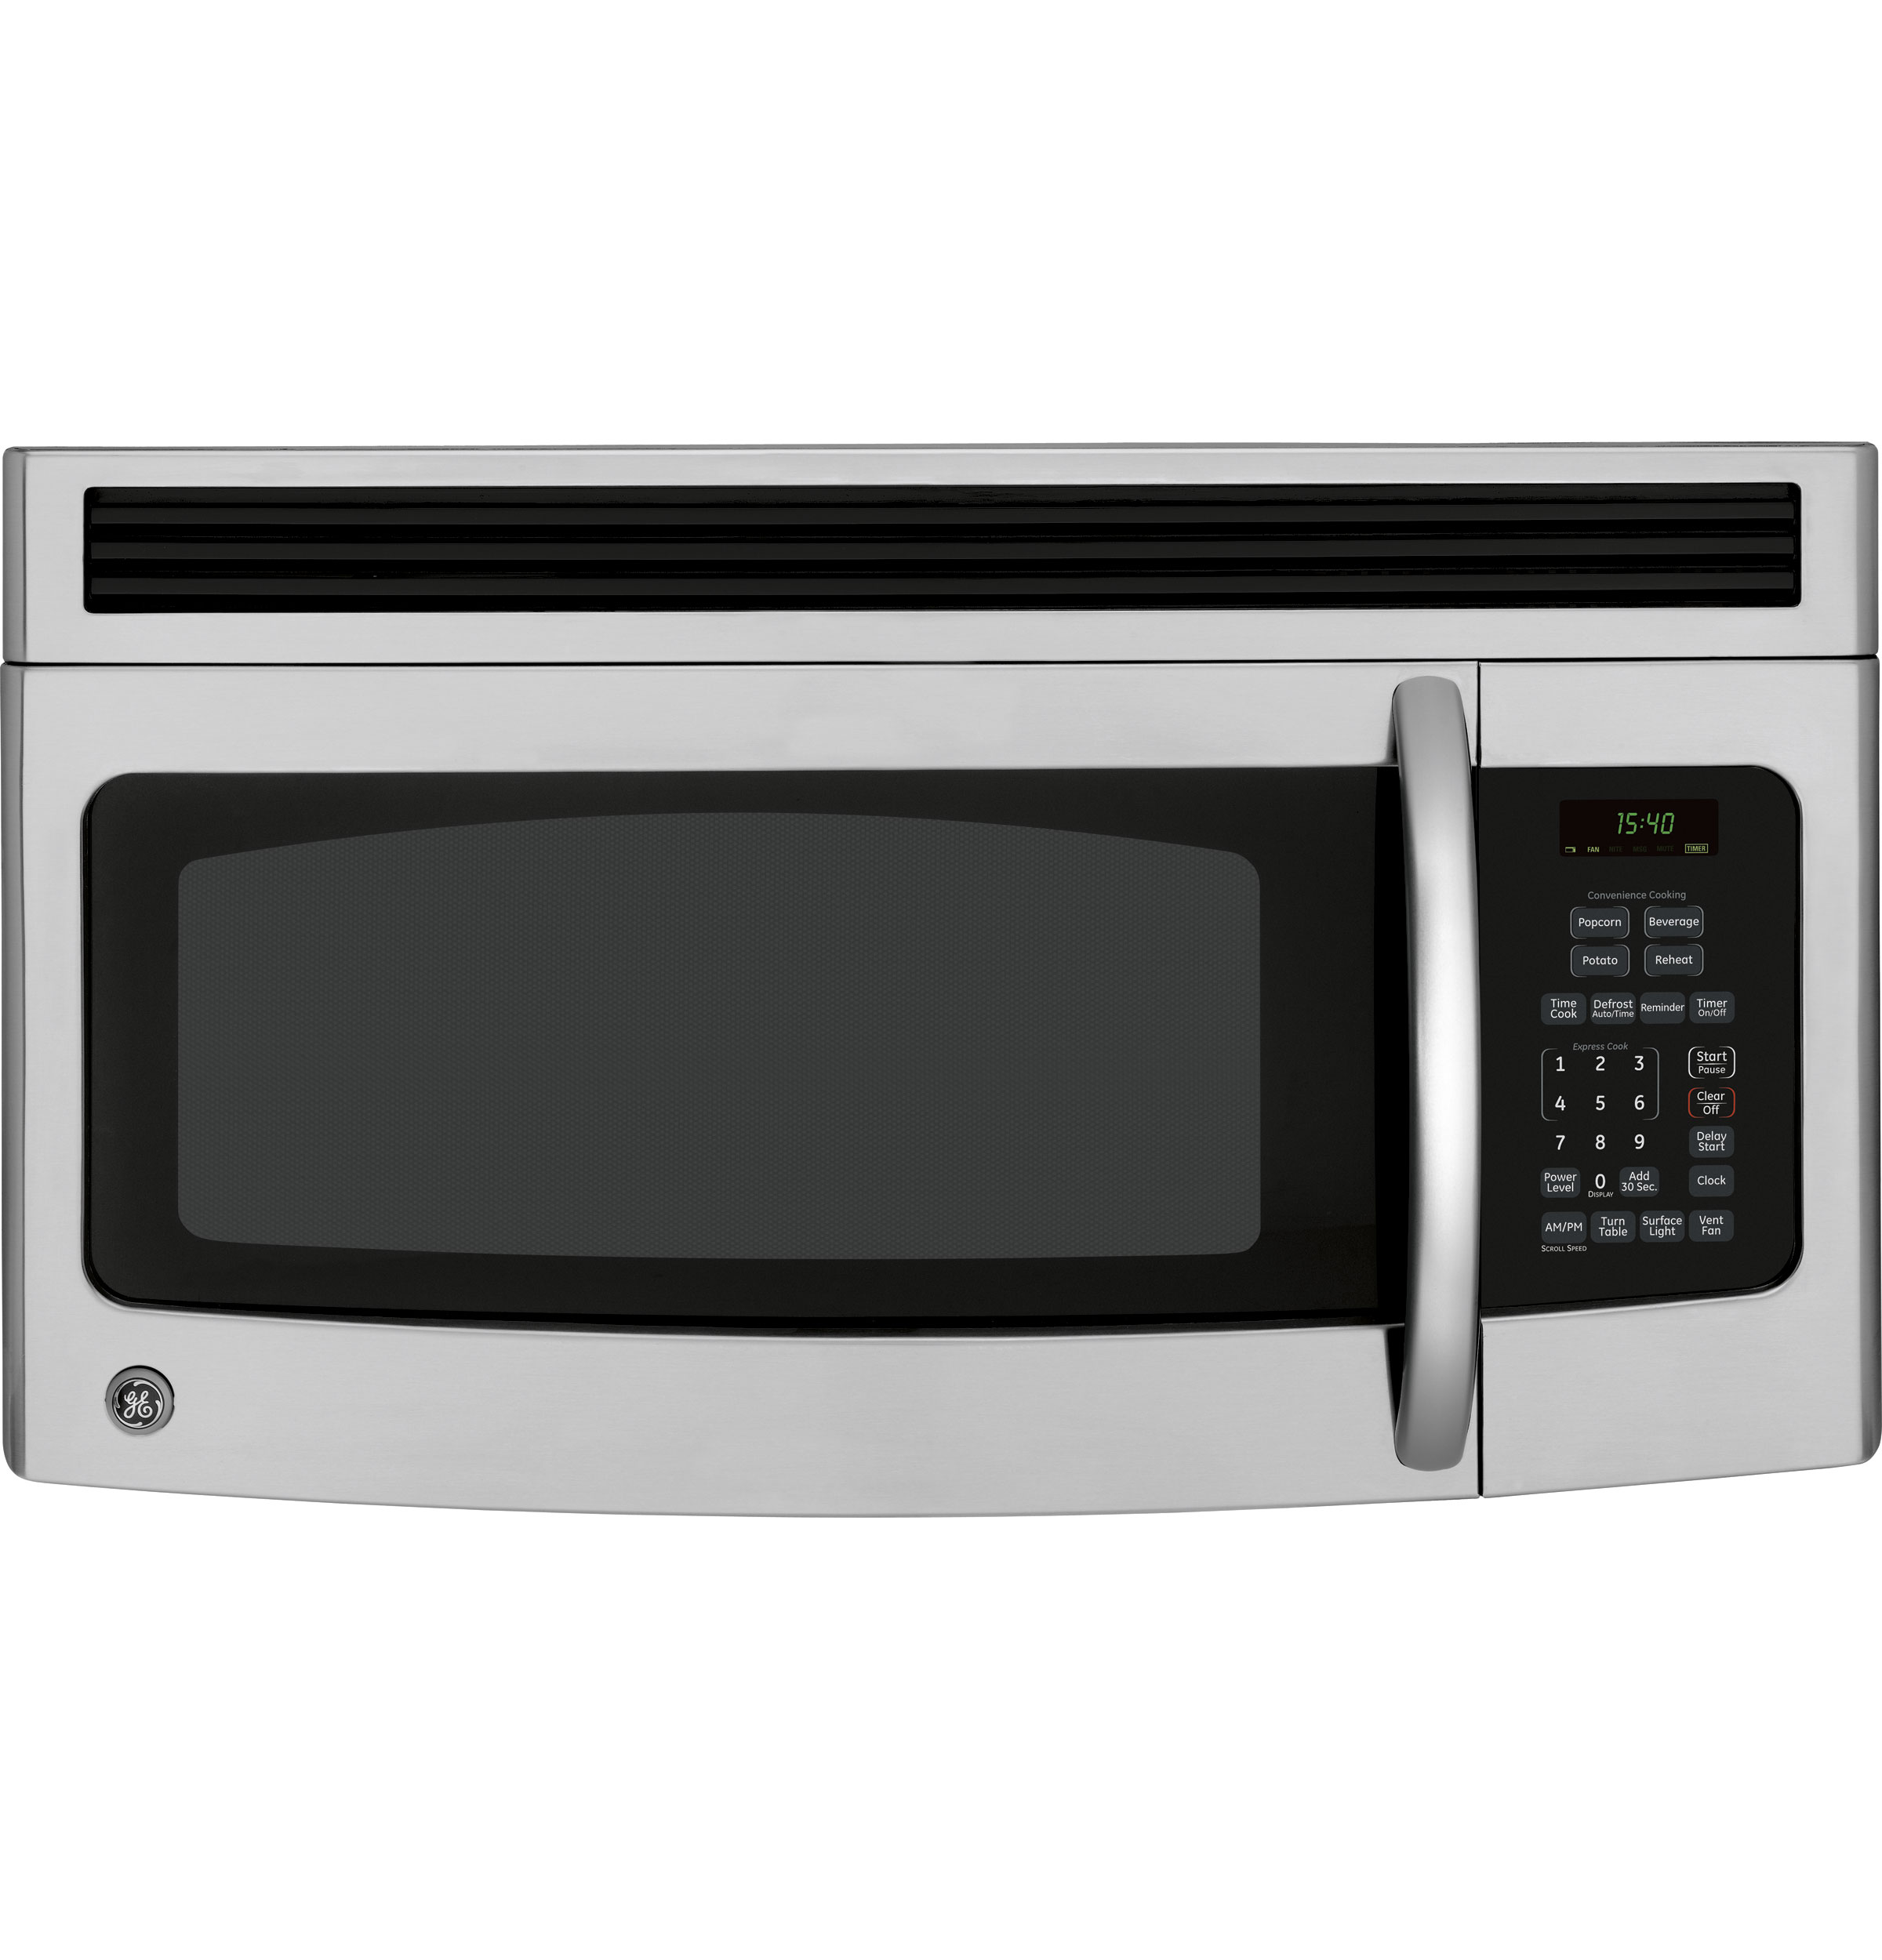 13 Inch High Over The Range Microwave Shapeyourminds Com